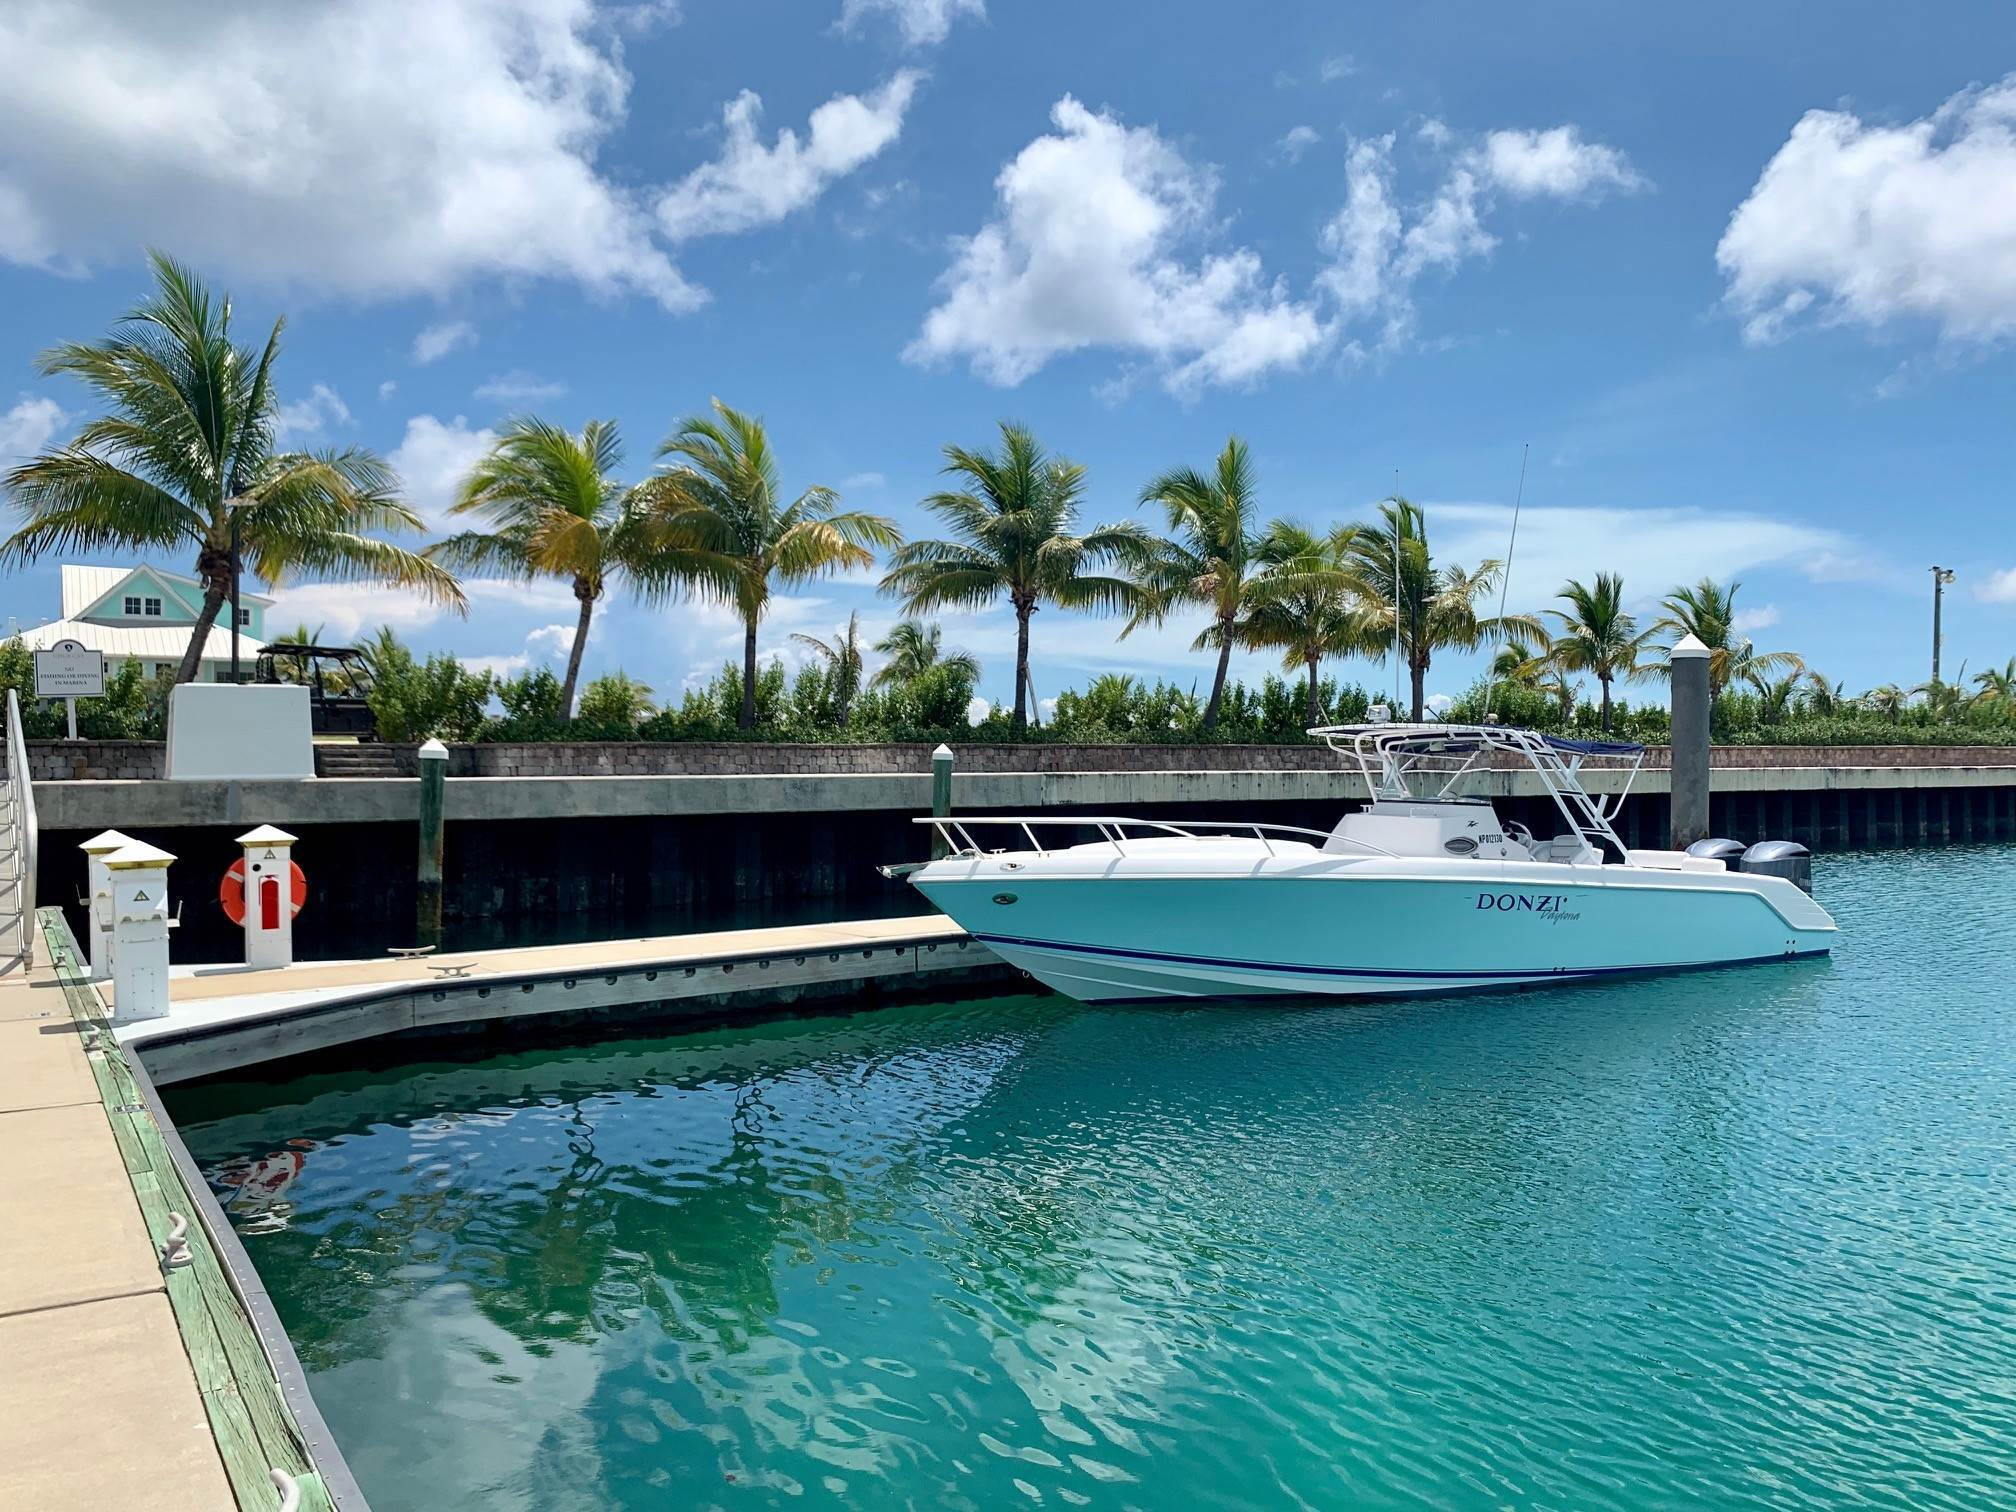 Other for Sale at Dock Slip #322 Chub Cay Marina, The Berry Islands - MLS 42003 Chub Cay, Berry Islands, Bahamas